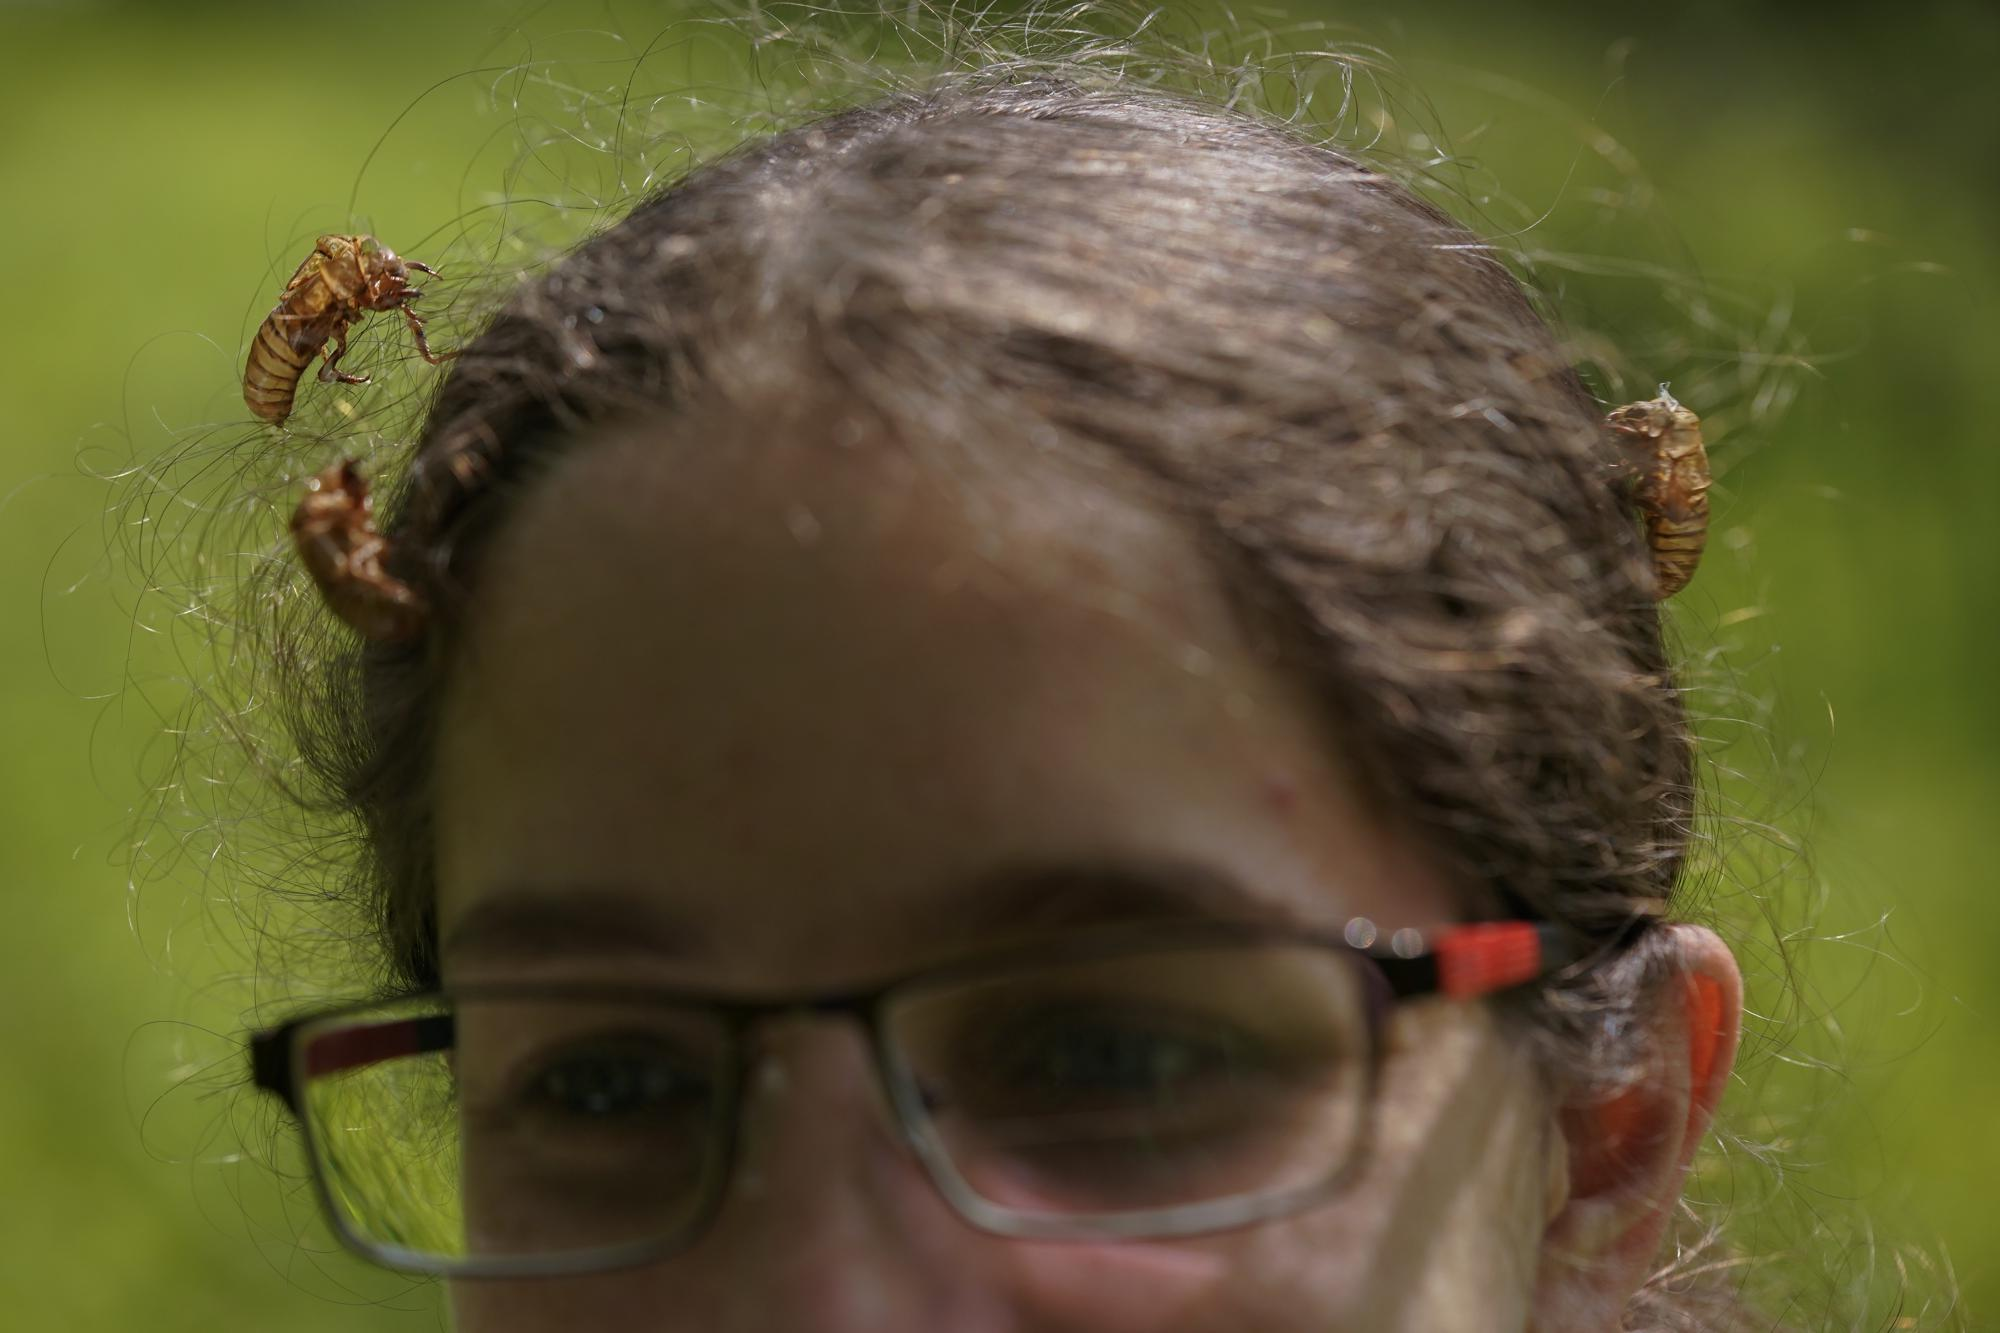 Dr. Zoe Getman-Pickering, a postdoctoral scientist at George Washington University, walks through Woodend Sanctuary and Mansion with cicada shells in her hair, Monday, May 17, 2021, in Chevy Chase, Md. (AP Photo/Carolyn Kaster)